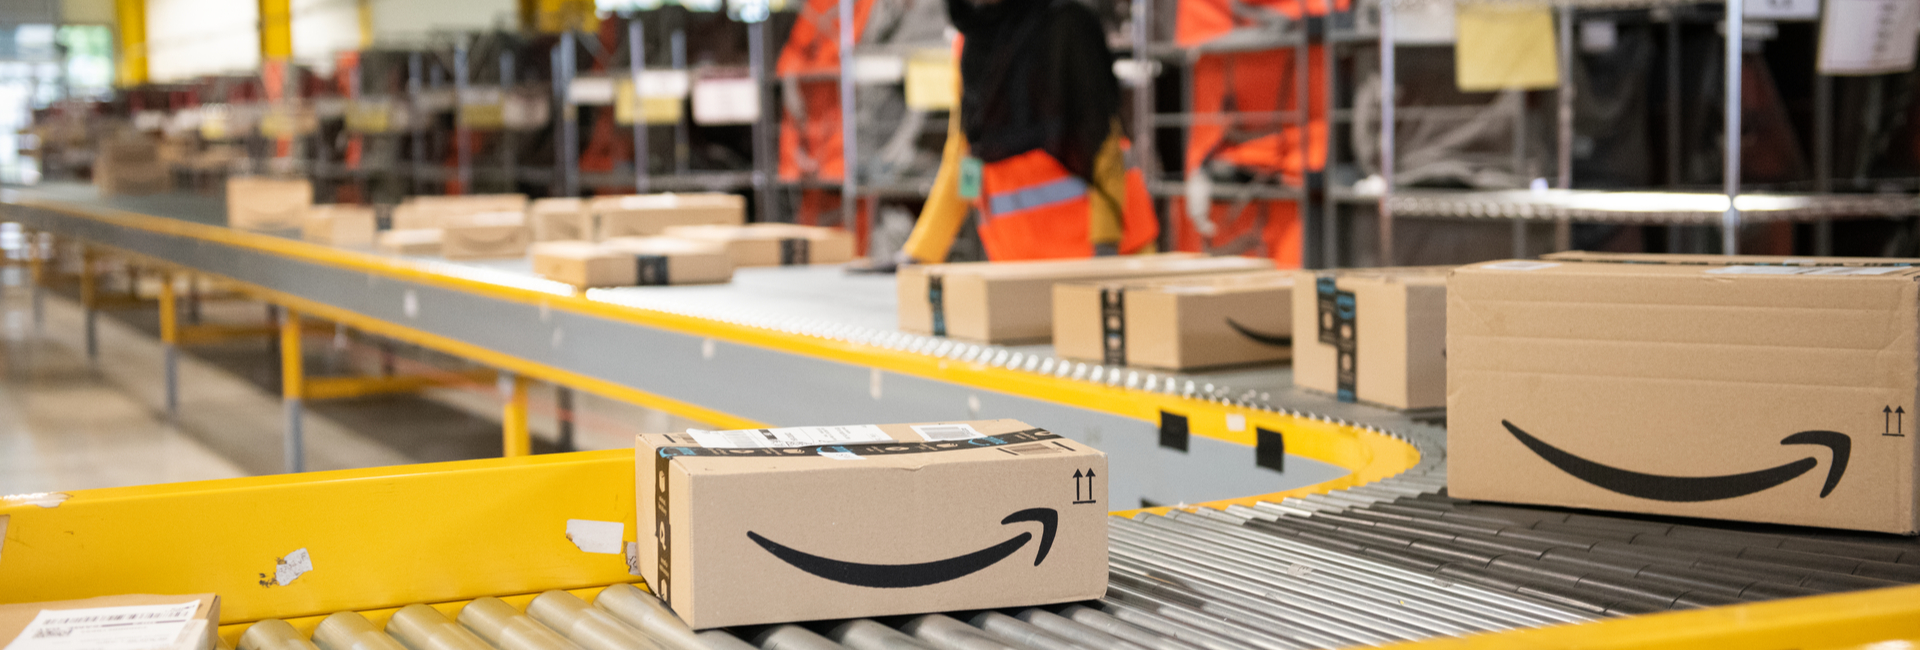 an Amazon package on a conveyor belt in an Amazon warehouse